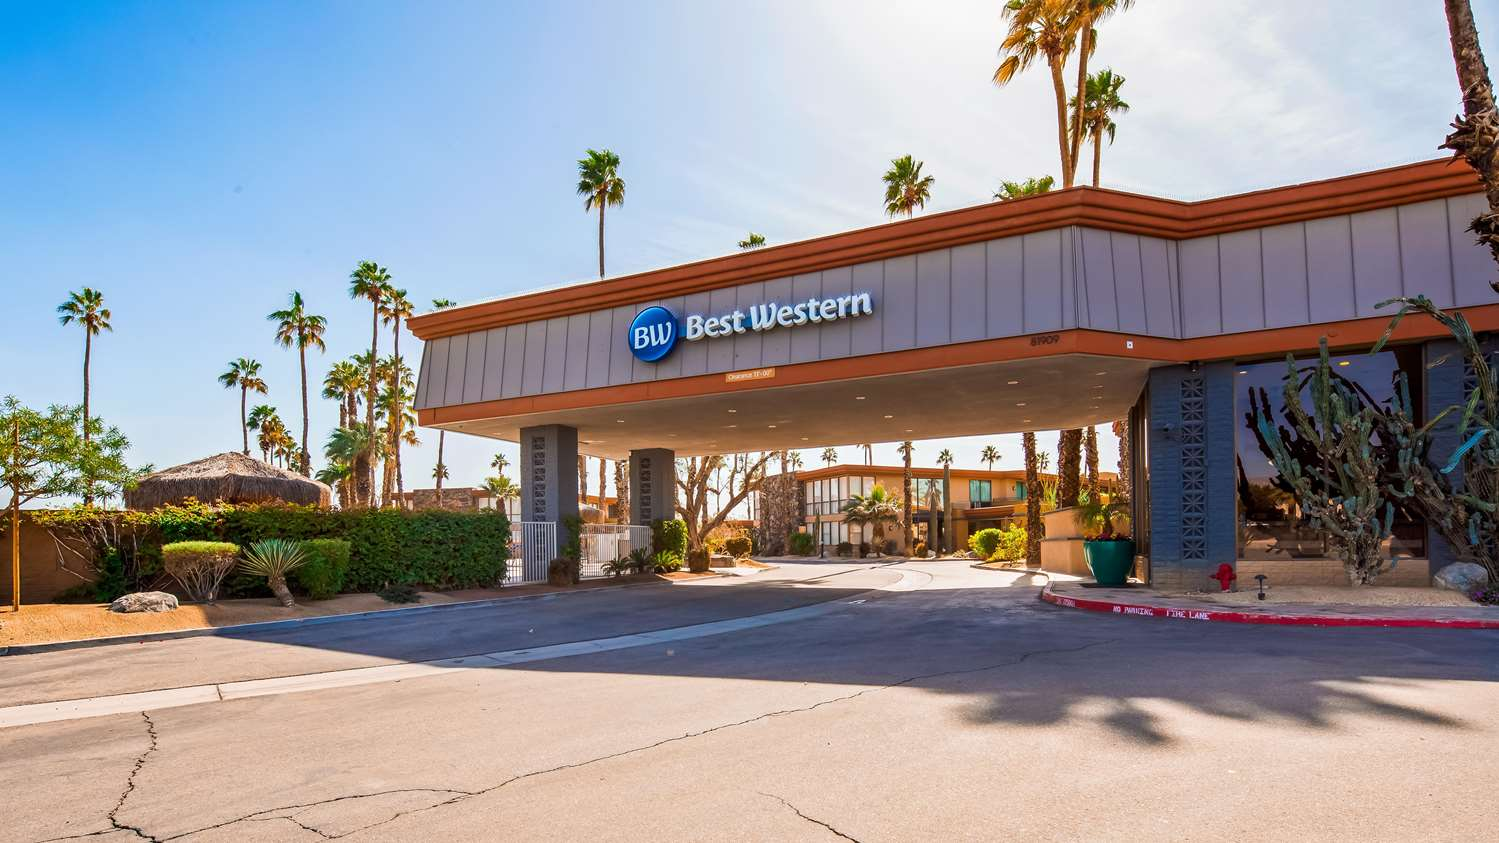 Hotels In Indio California Near Coachella